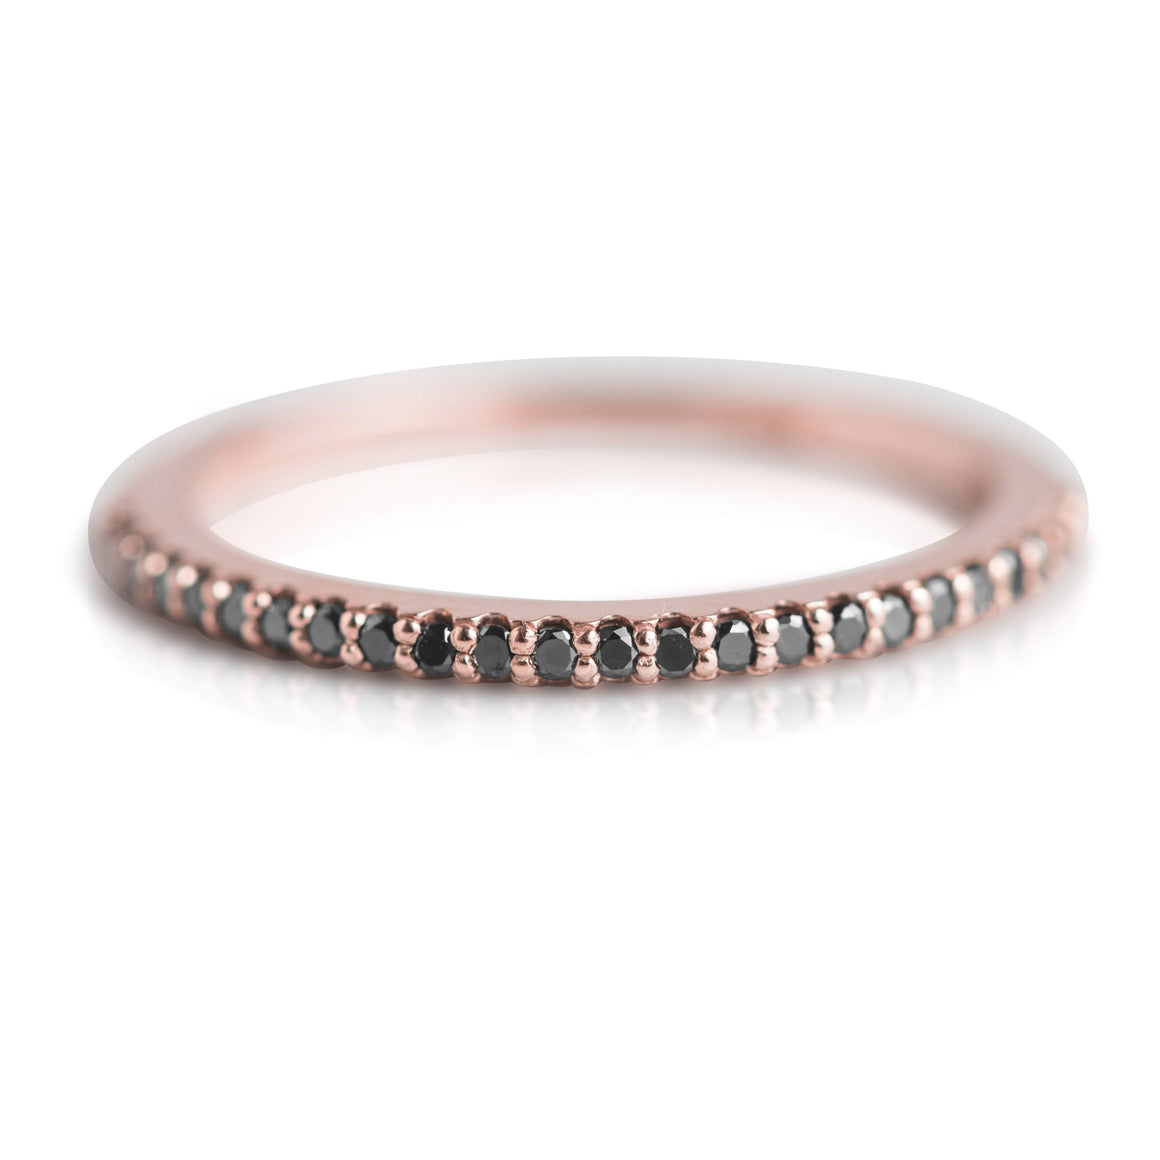 BLACK DIAMOND AND ROSE GOLD STACK RING